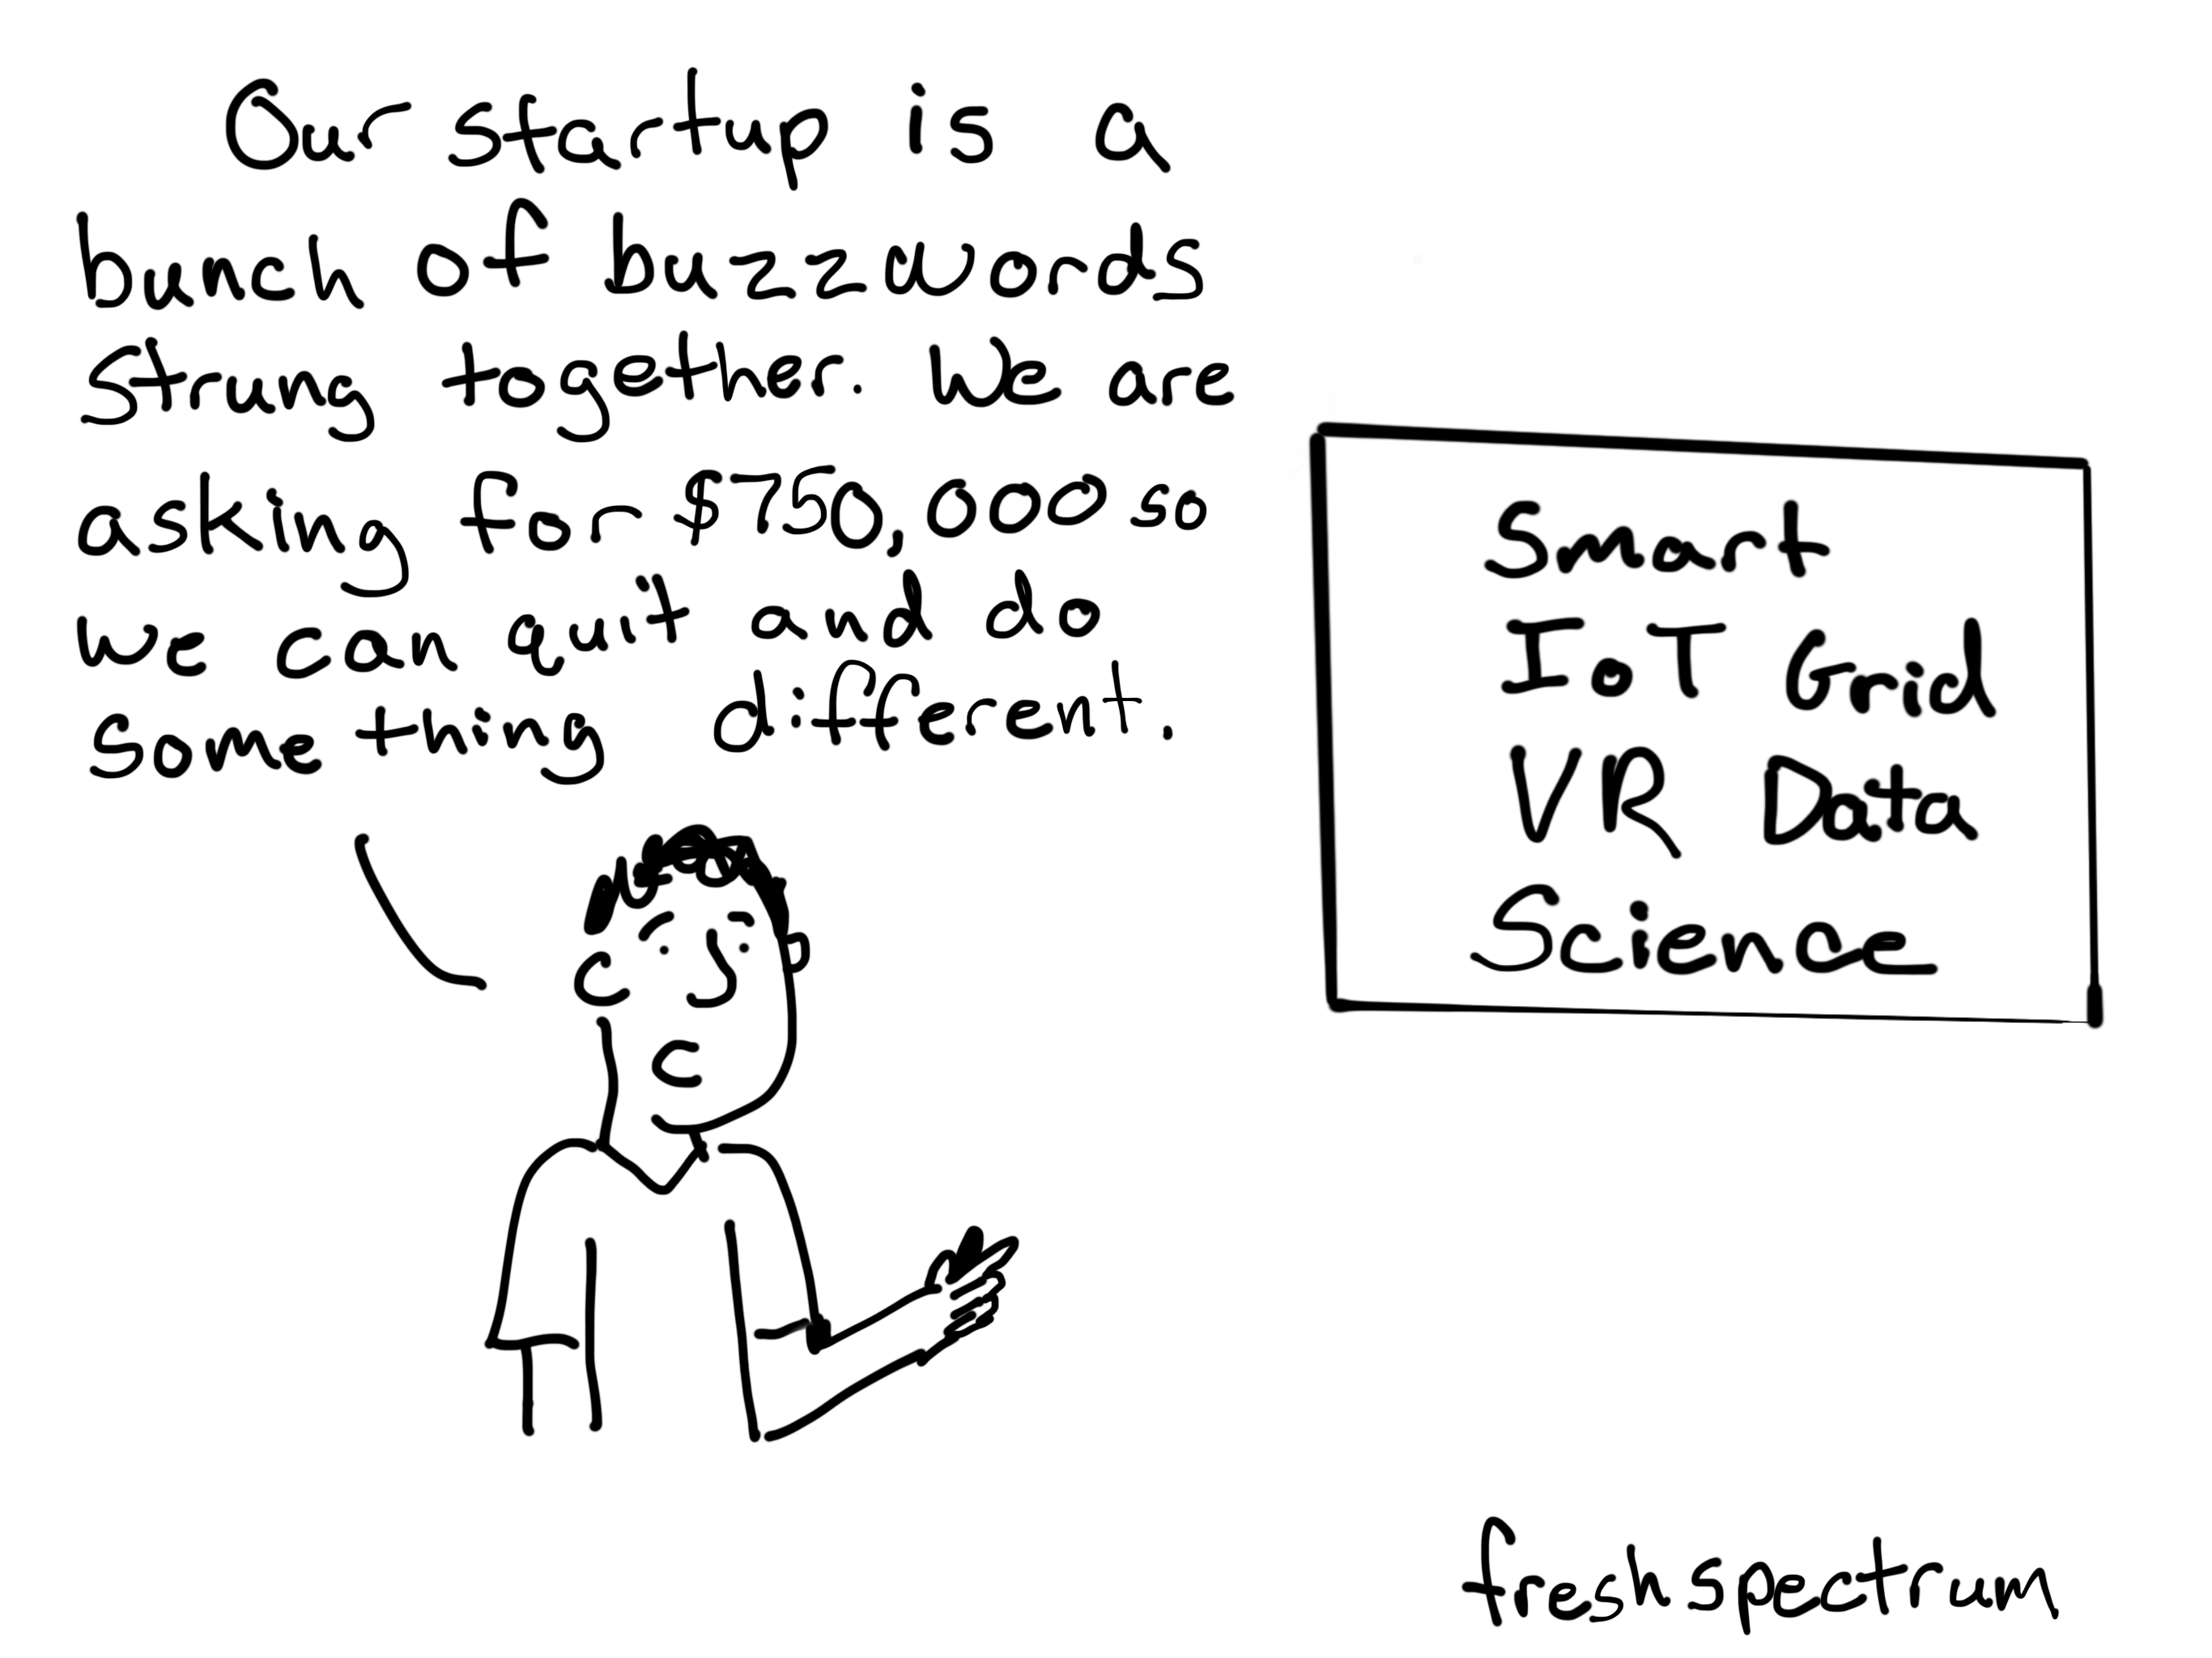 Freshspectrum startup cartoon with a half-hearted pitch for funding.